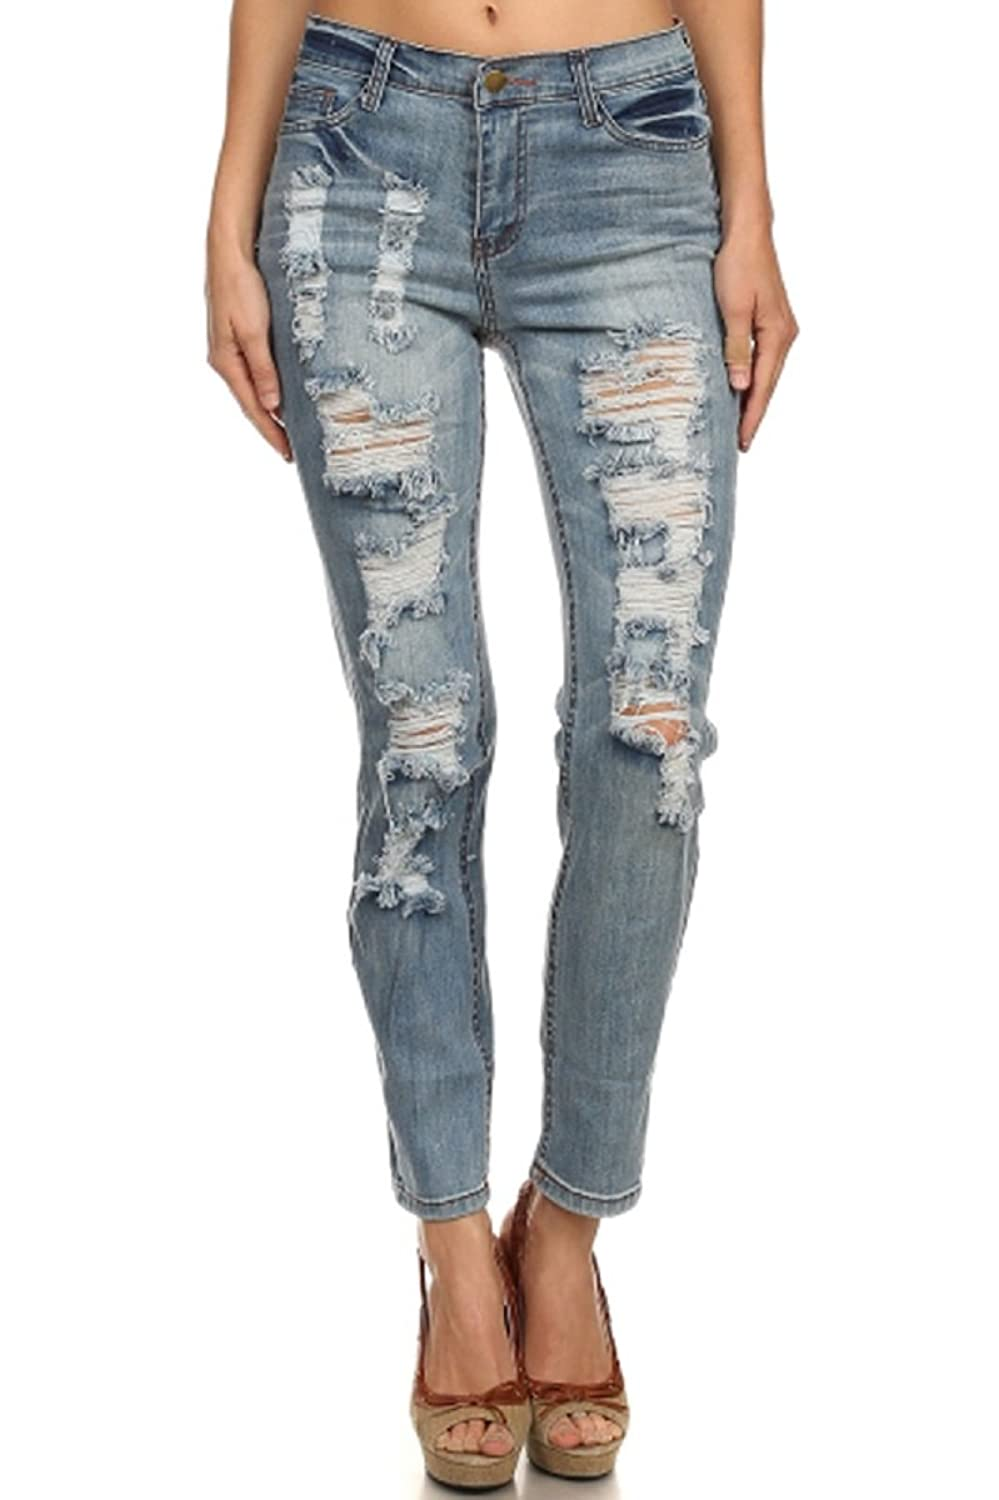 TheLovely Distressed Ripped Boot Cut Destroyed Ice Blue Denim Jean